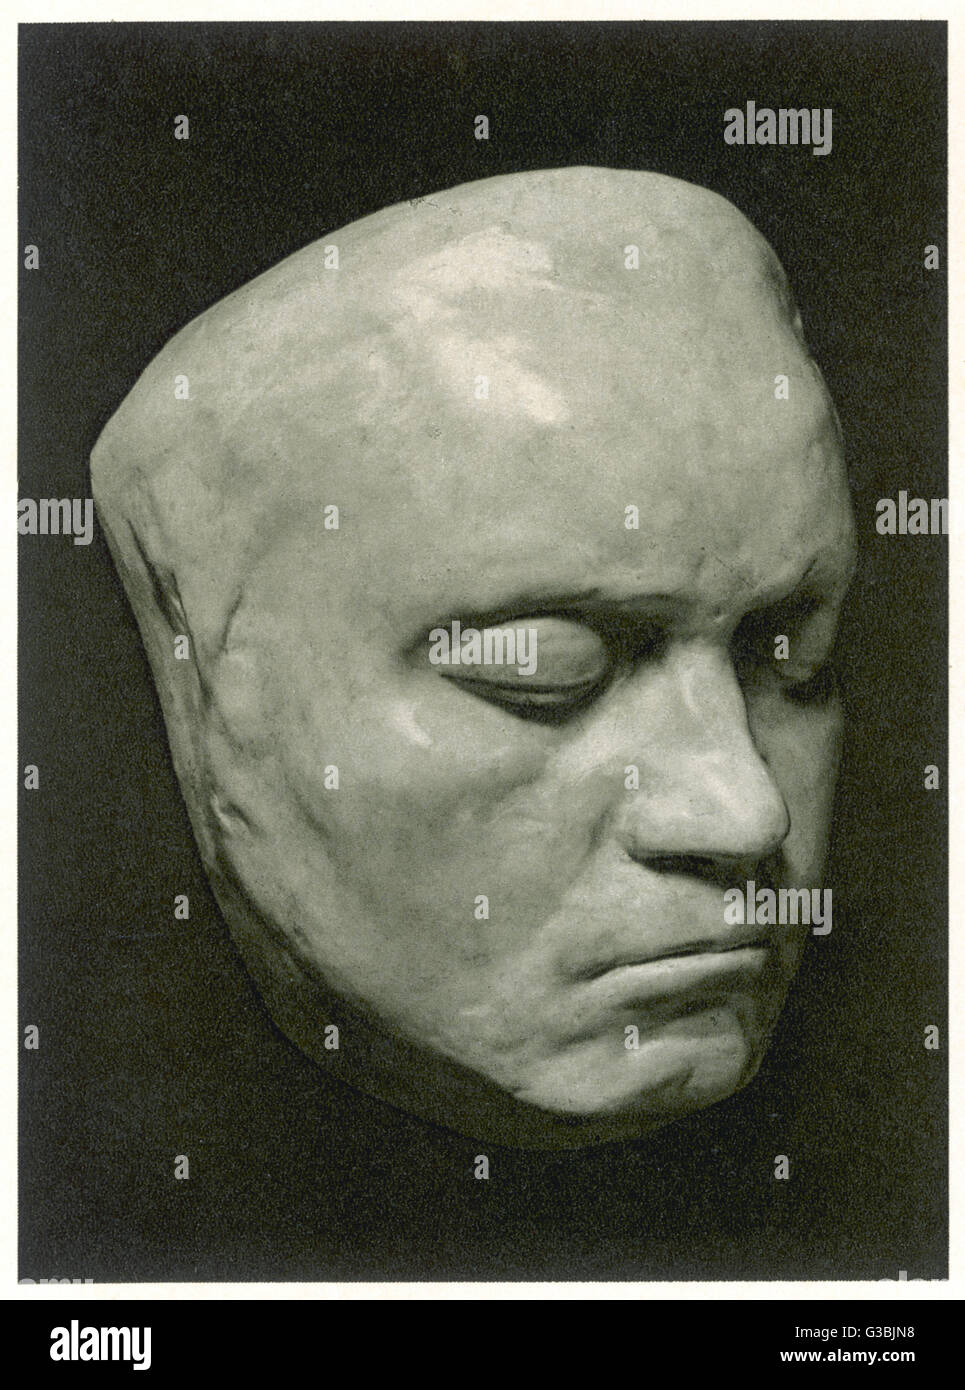 LUDWIG VAN BEETHOVEN  Death mask of the German  Composer.       Date: 1770 - 1827 - Stock Image